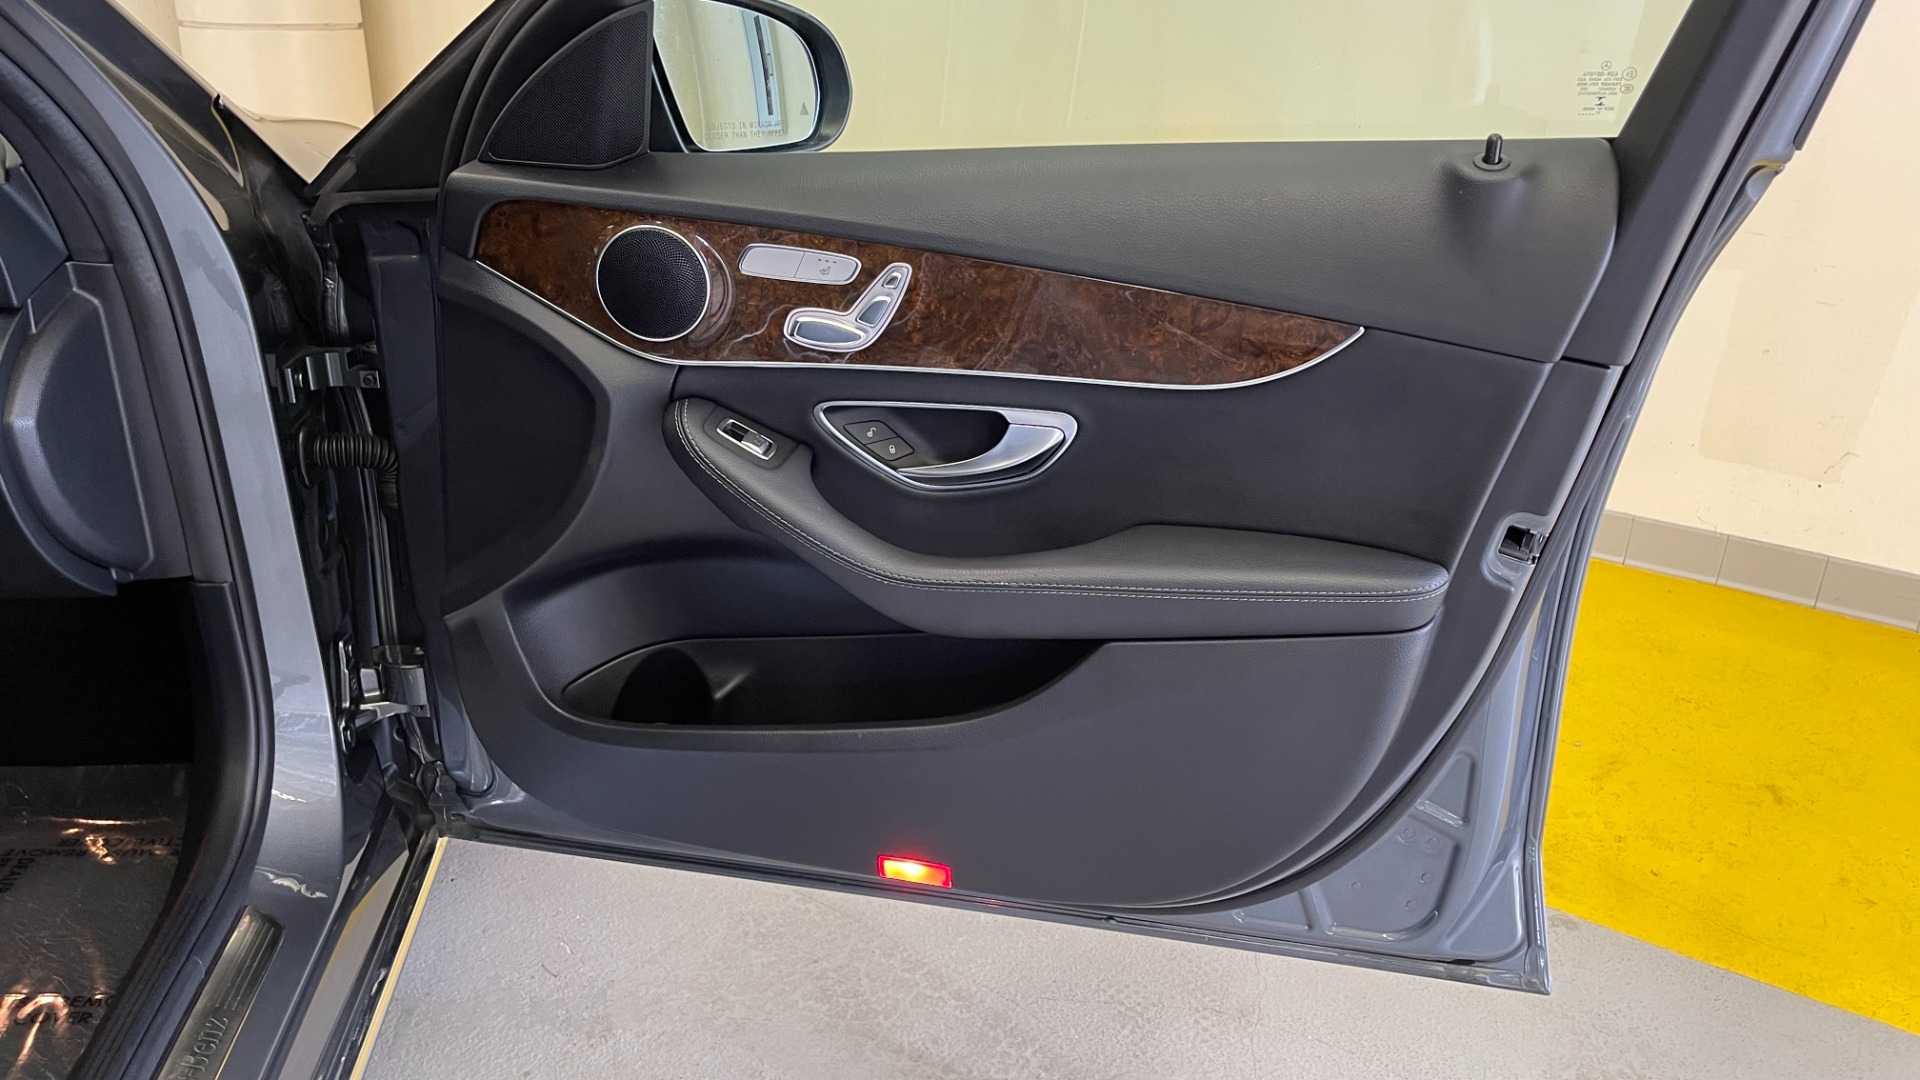 Used 2018 Mercedes-Benz C-CLASS C 300 PREMIUM / SUNROOF / APPLE CARPLAY / HTD STS / REARVIEW for sale $31,795 at Formula Imports in Charlotte NC 28227 48